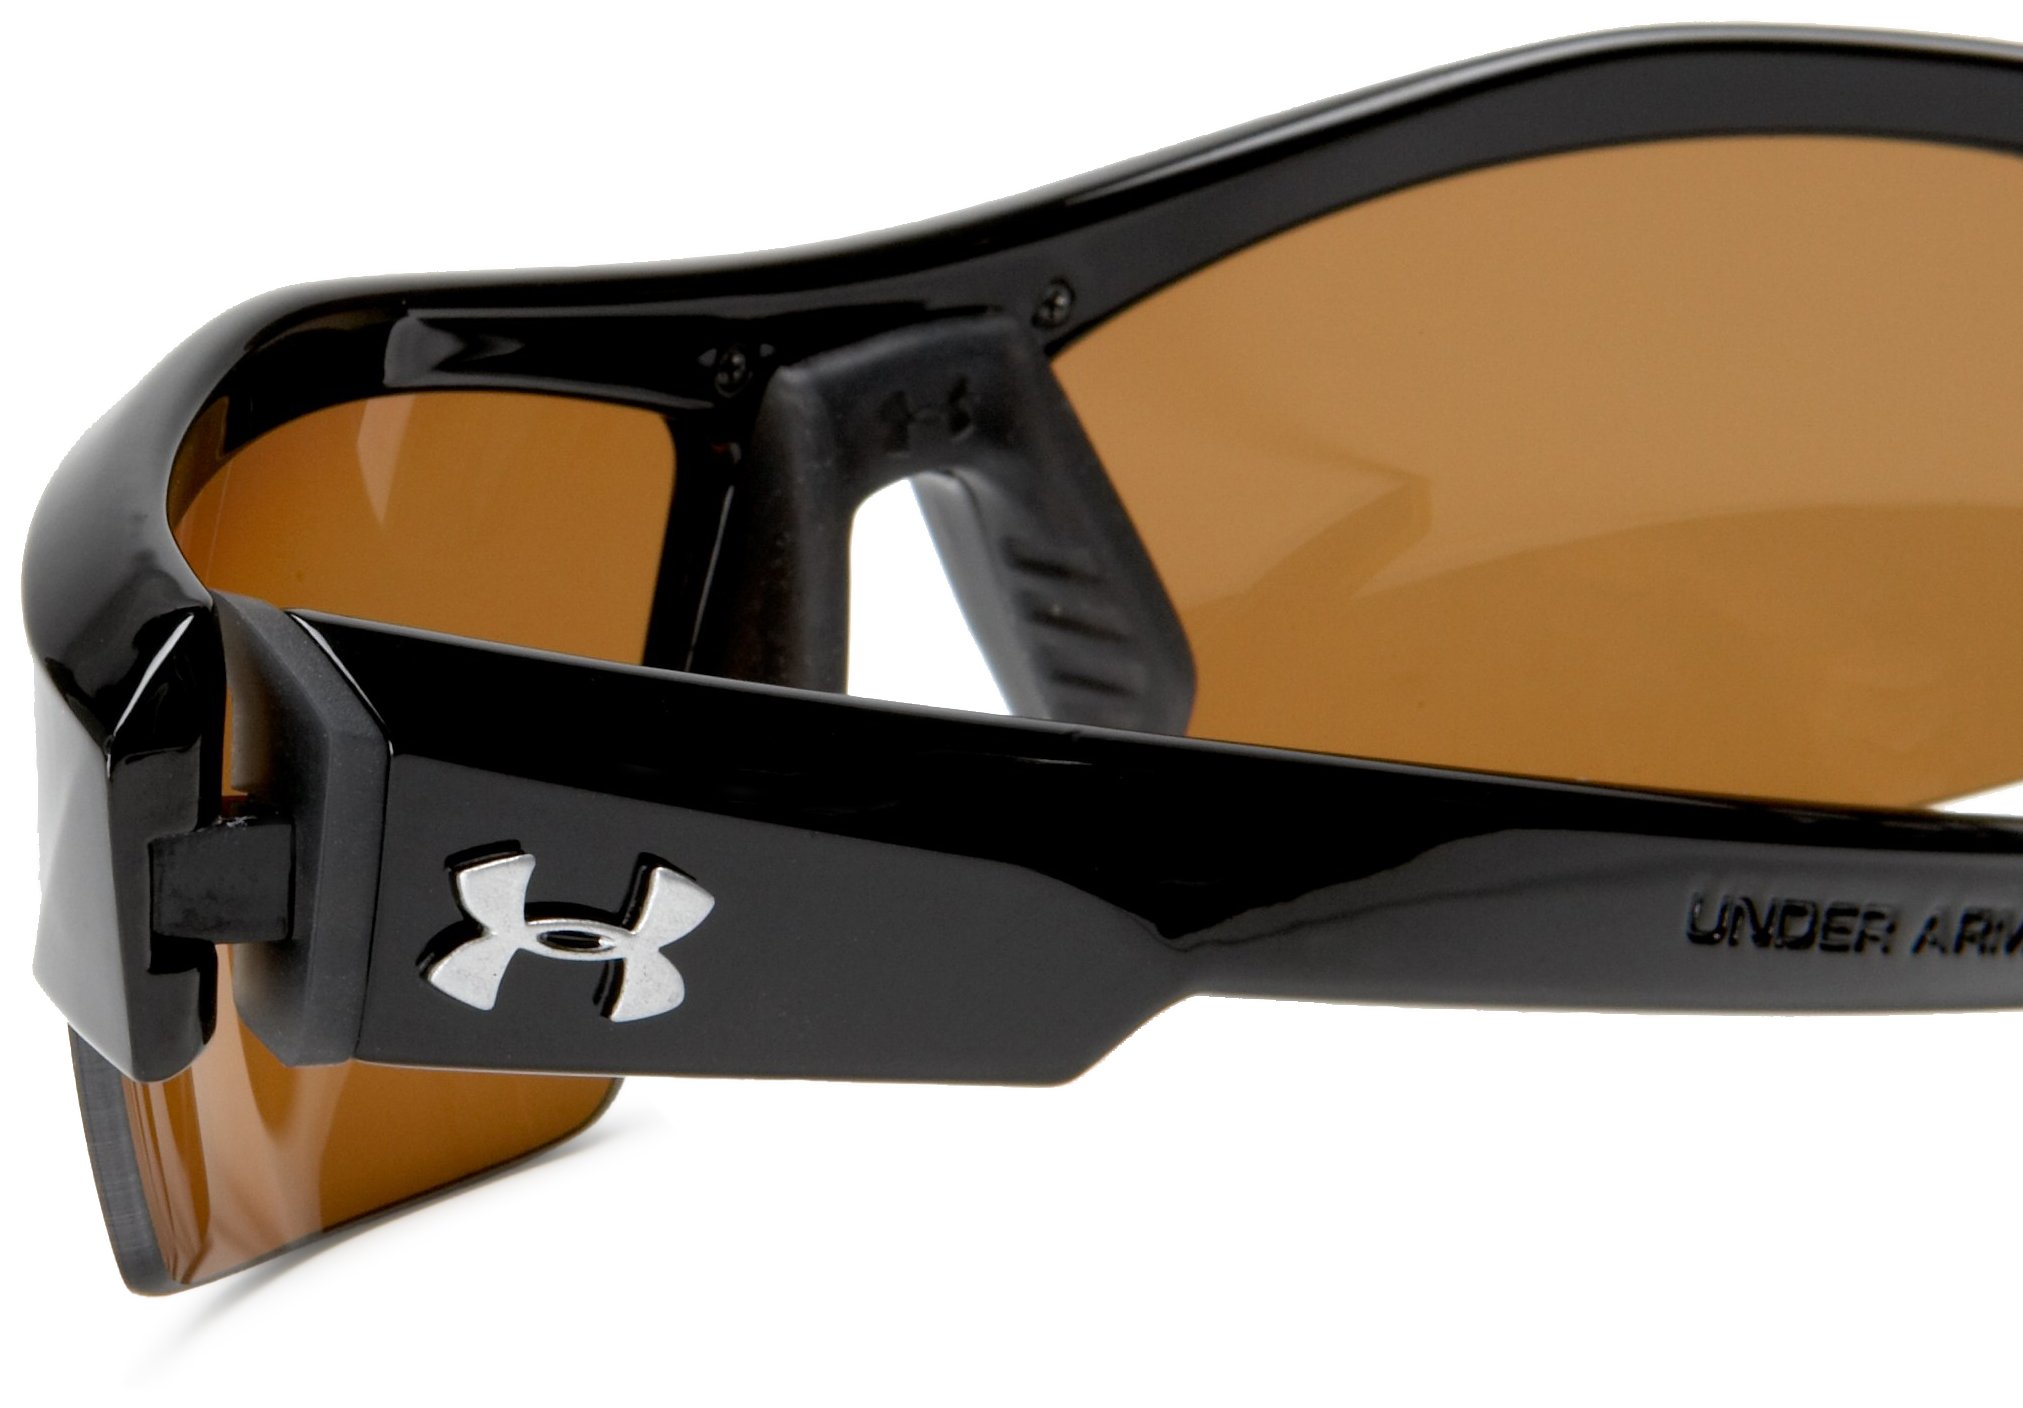 Under Armour Igniter Polarized Multiflection Sunglasses, Shiny Black Frame/Brown Lens, one size by Under Armour (Image #4)